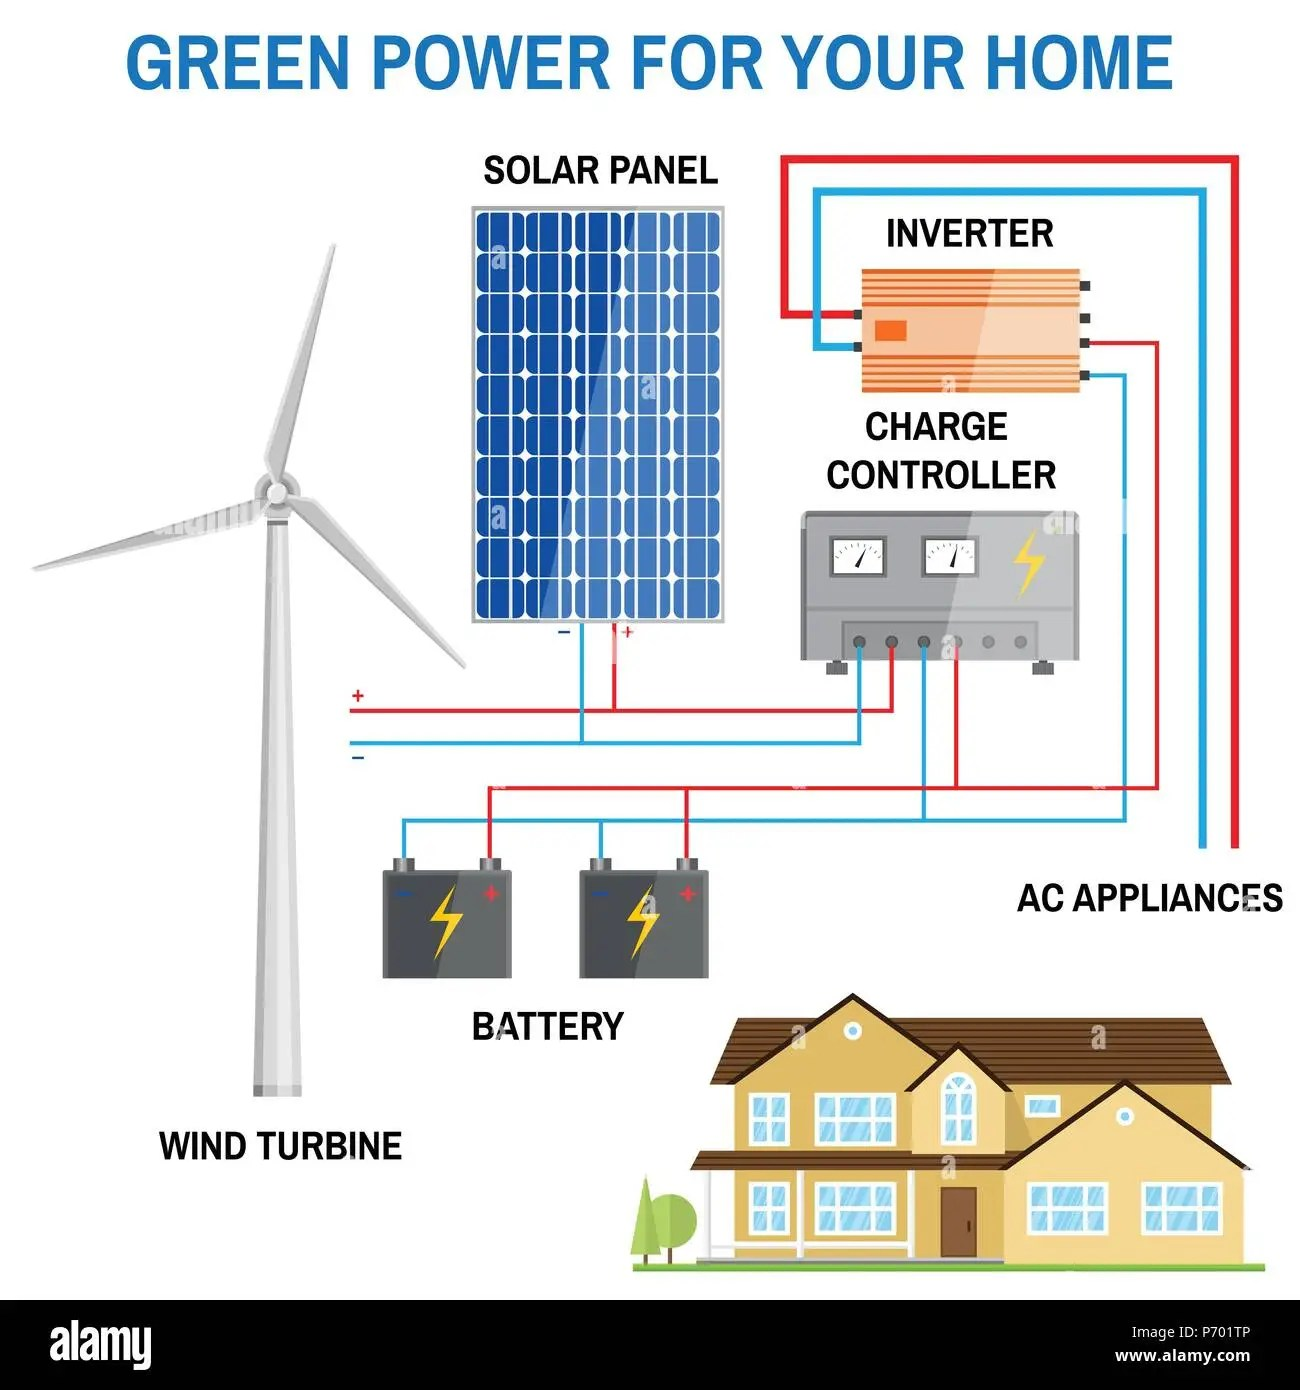 hight resolution of solar panel and wind power generation system for home renewable solar power diagram house power from turbine or solar